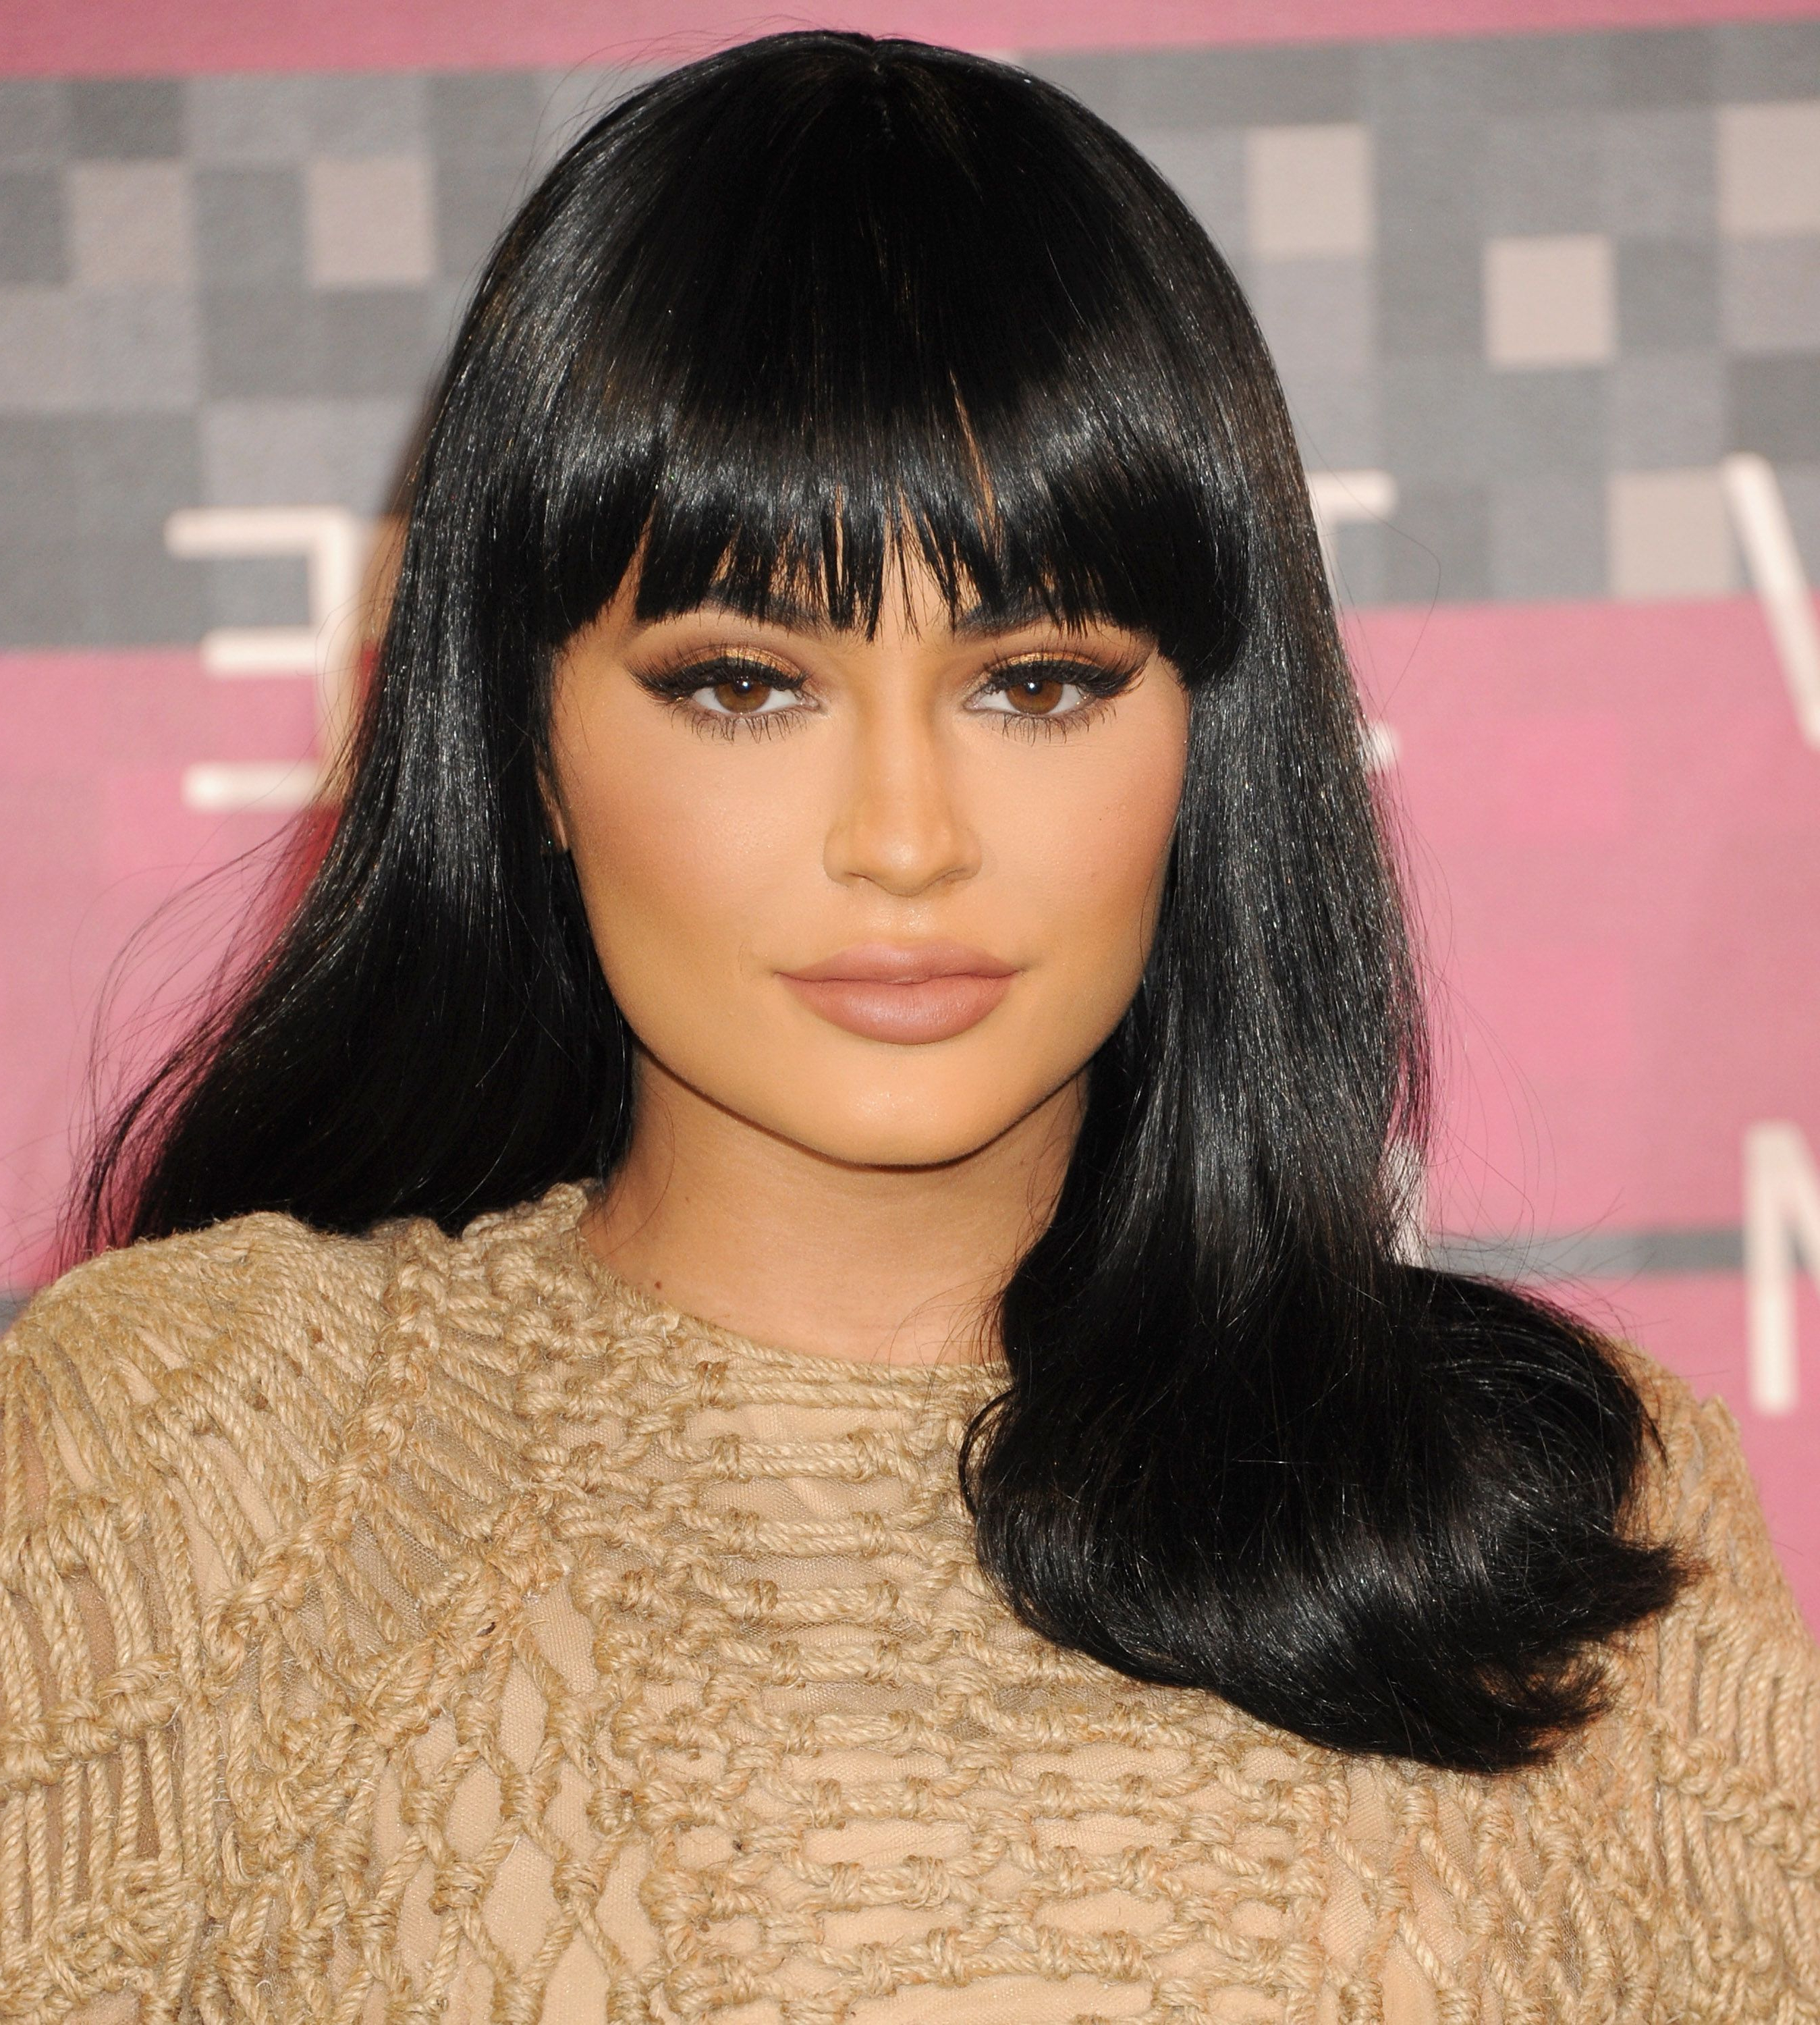 50 Best Kylie Jenner Hair Looks – The Best Hairstyles Of Kylie Jenner Throughout Kylie Jenner Short Haircuts (View 15 of 25)